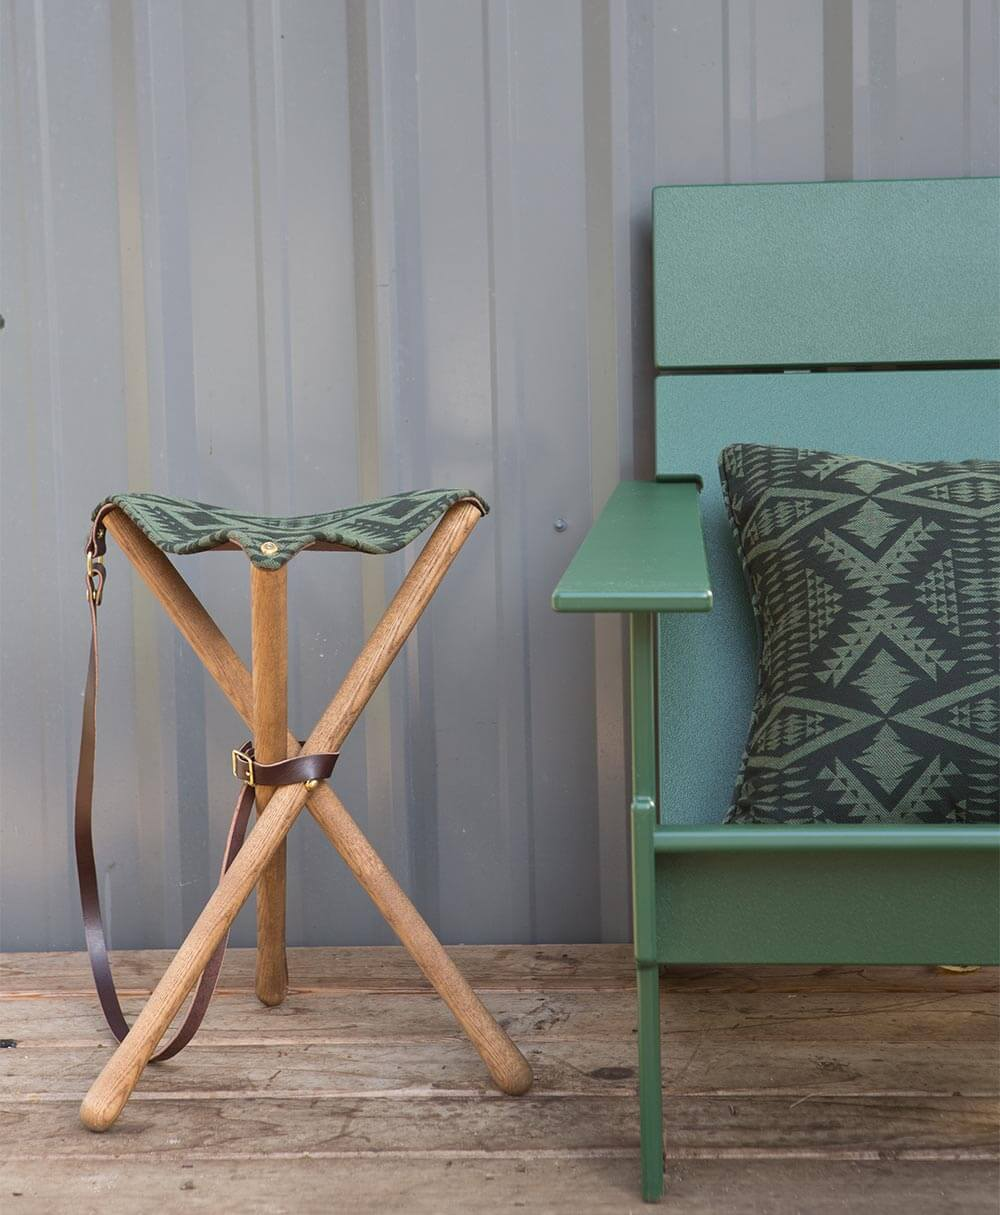 A stool featuring a green patterned upholstery fabric from the Pendleton by Sunbrella collection sits next a green pillow.